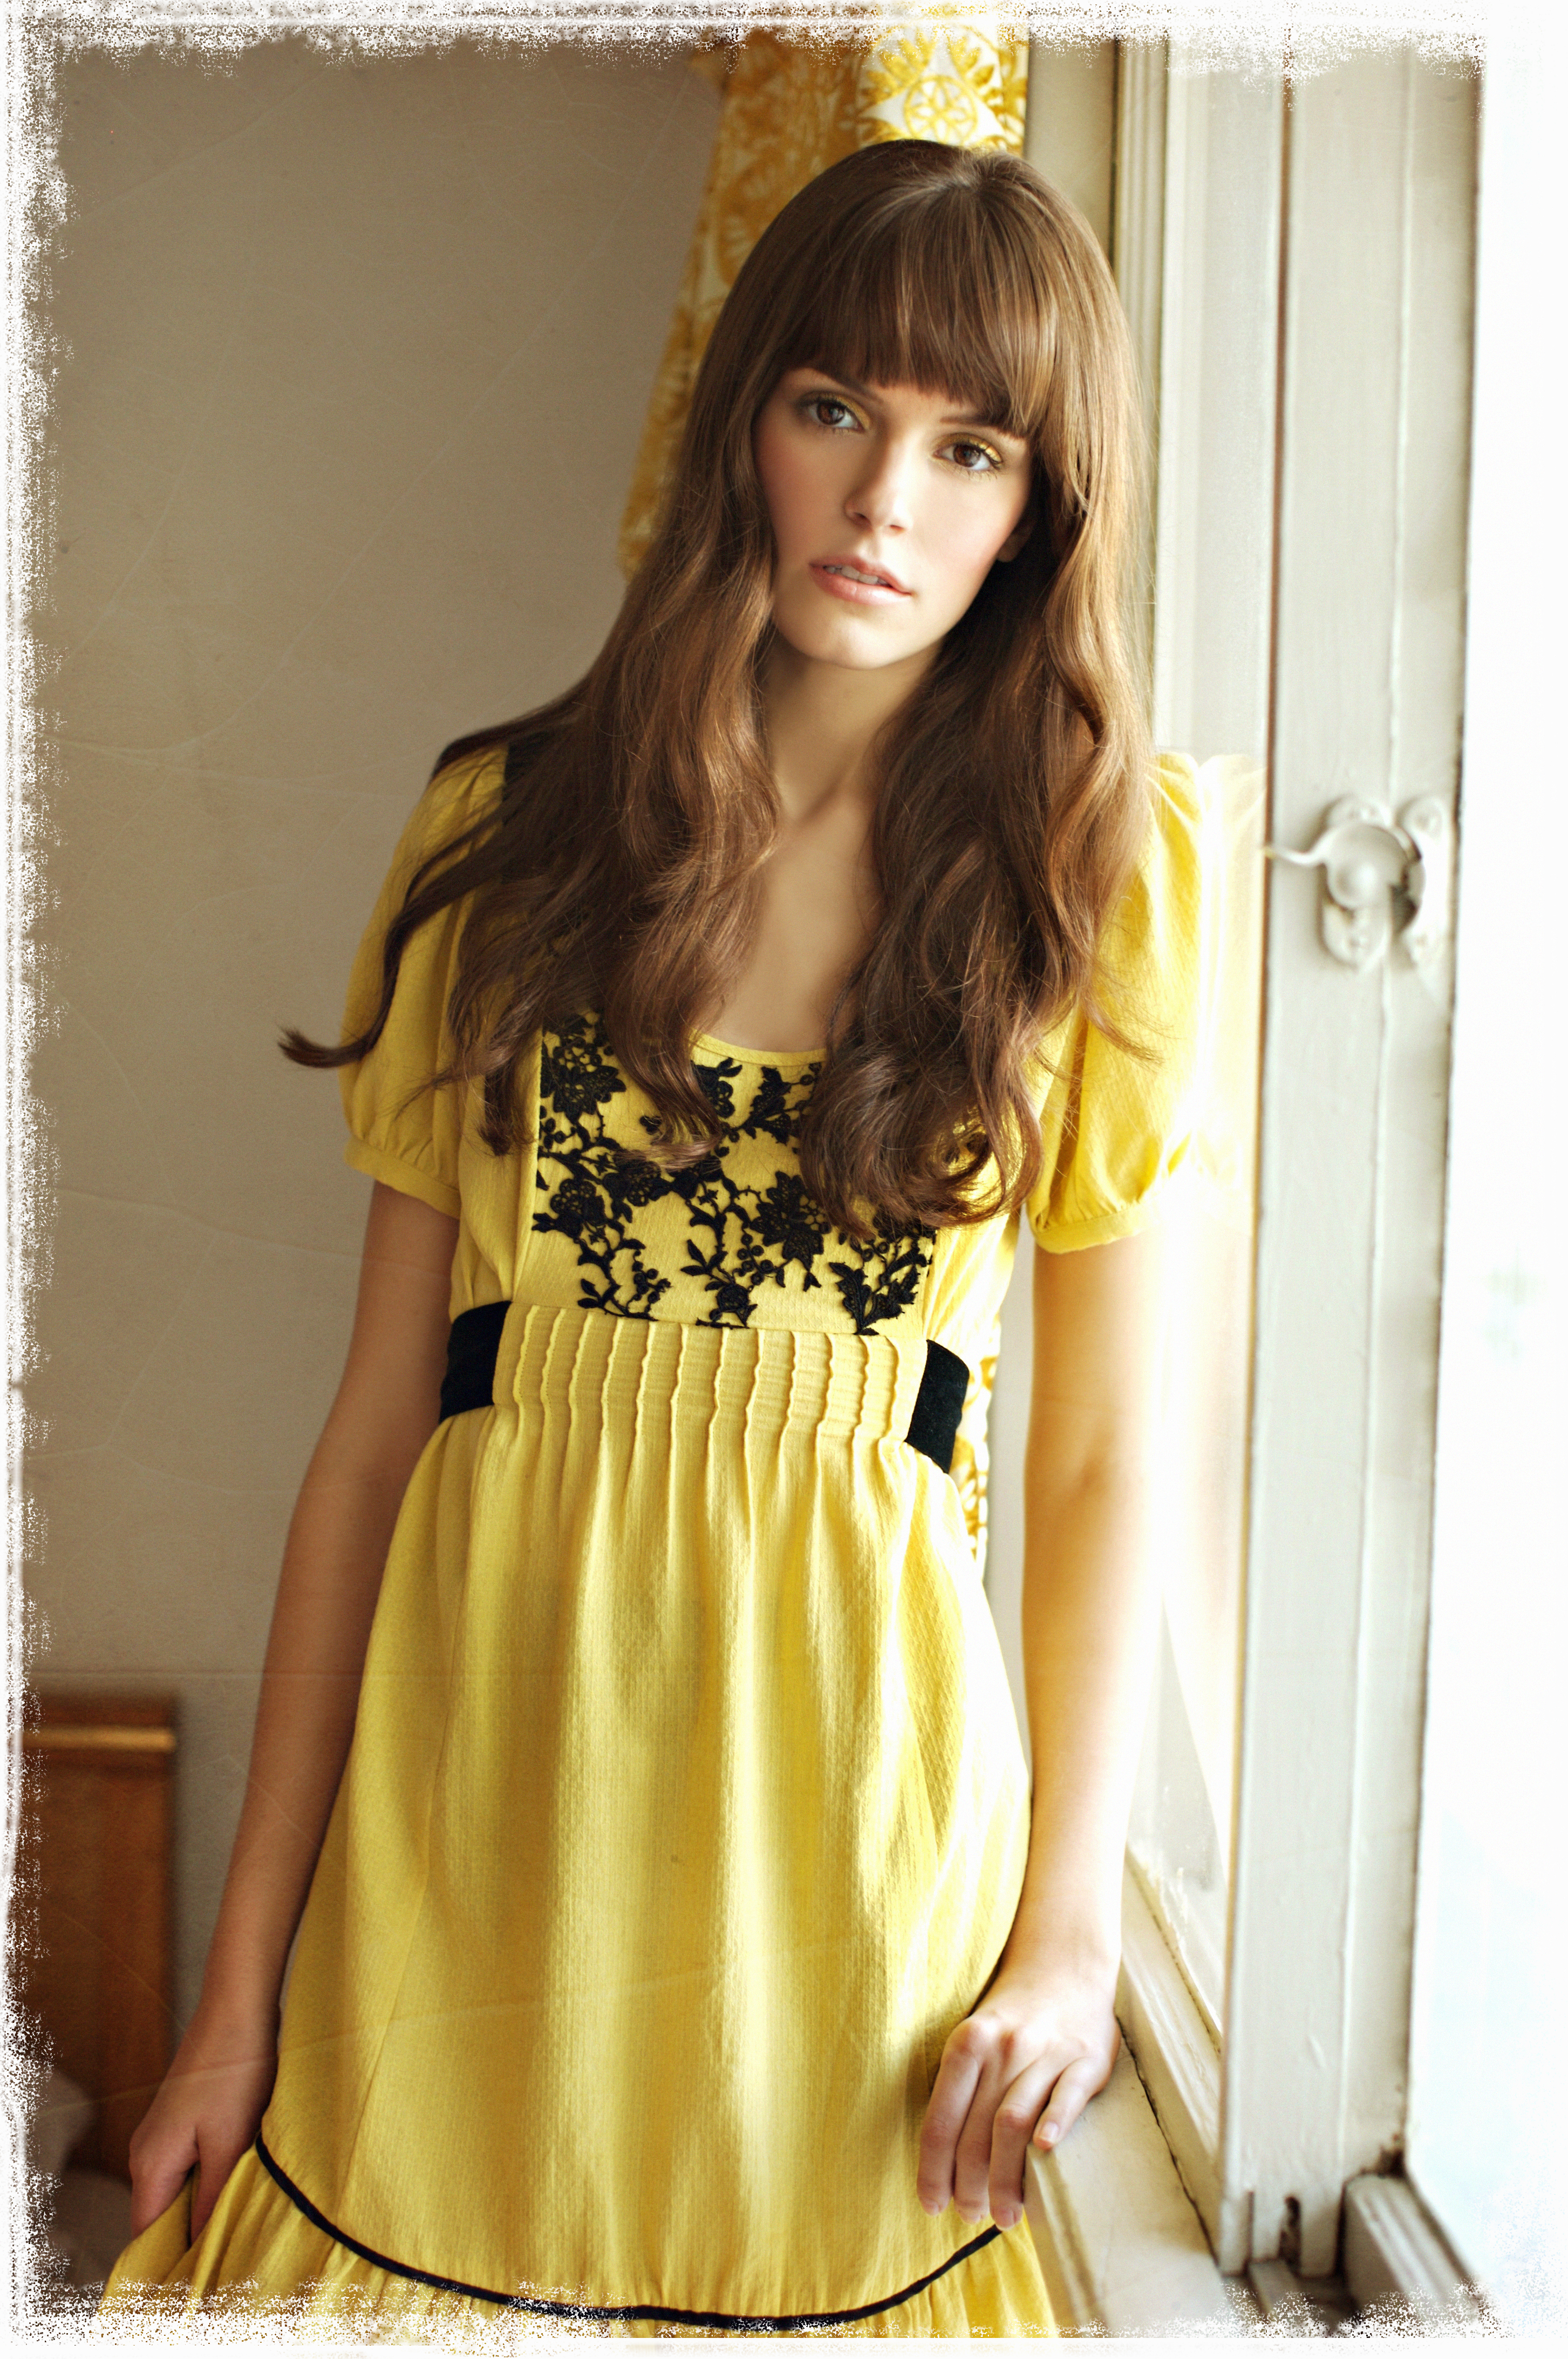 Wedding Dresses, Fashion, yellow, dress